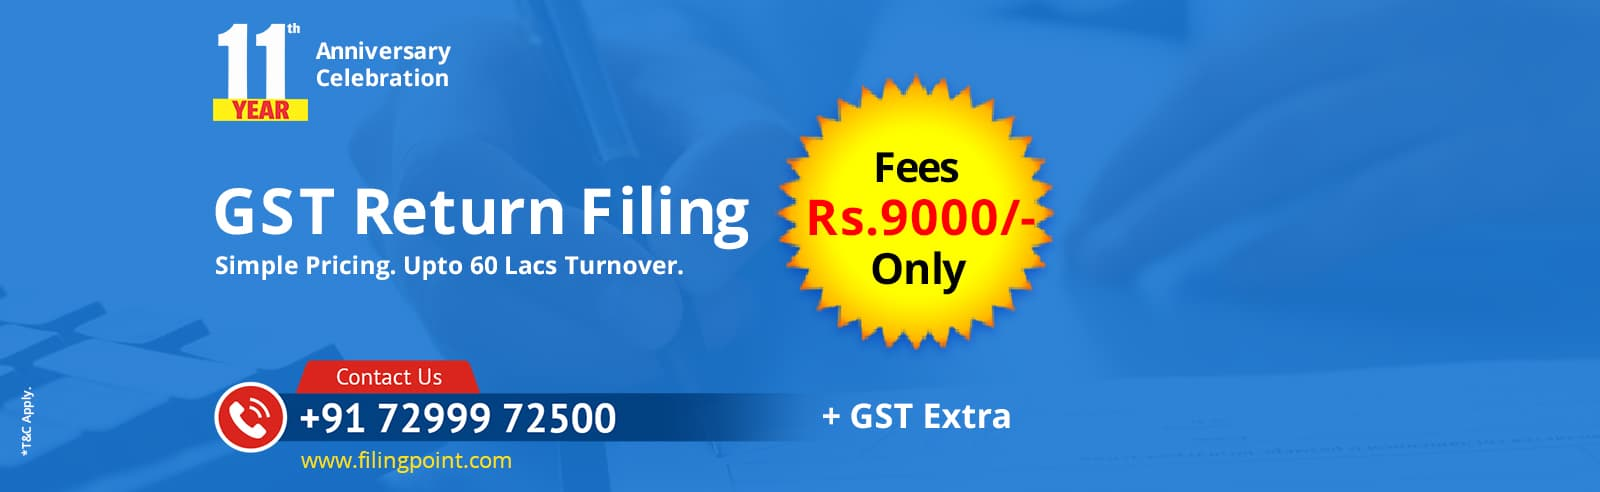 GST Filing Services Near Me Chennai Cenetoph Road Second Street Alwarpet Alwarpet